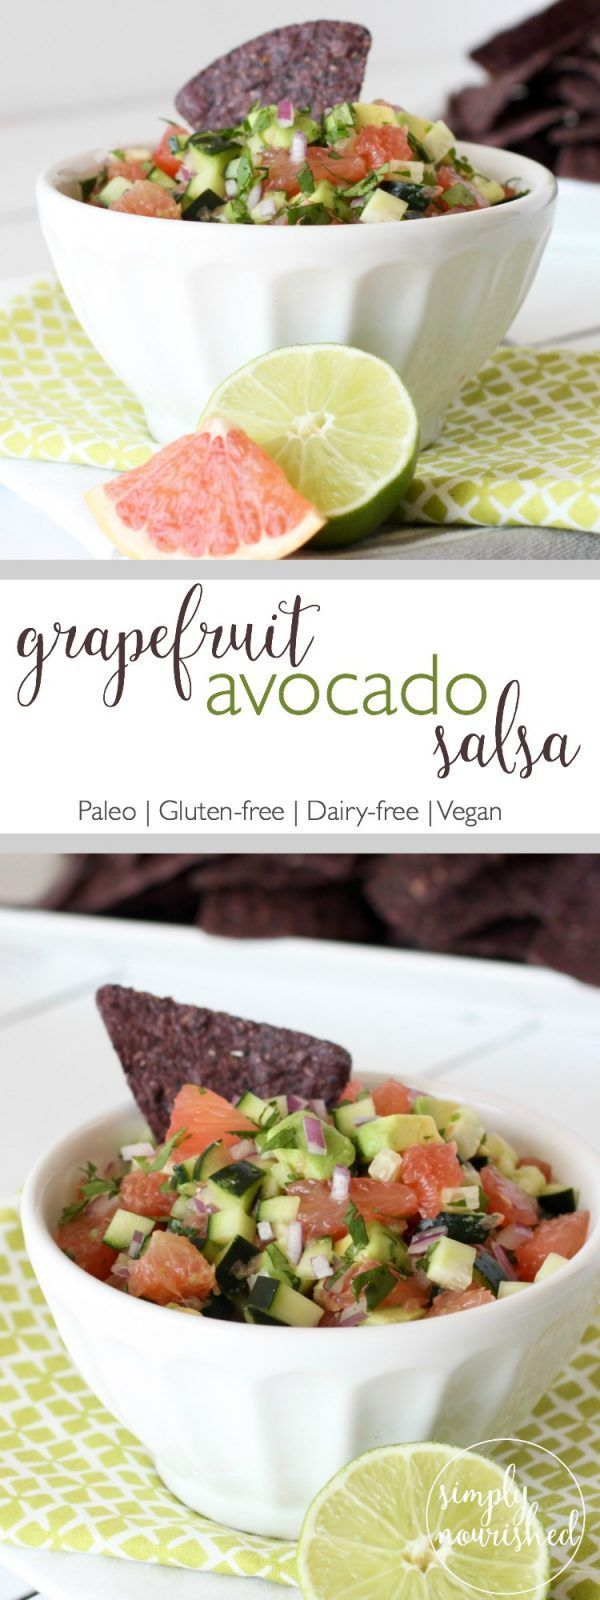 Fruits and fire collide in this uniquely refreshing Grapefruit Avocado Salsa - perfect for chip dipping or just eating by the spoonful | http://simplynourishedrecipes.com/grapefruit-avocado-salsa/